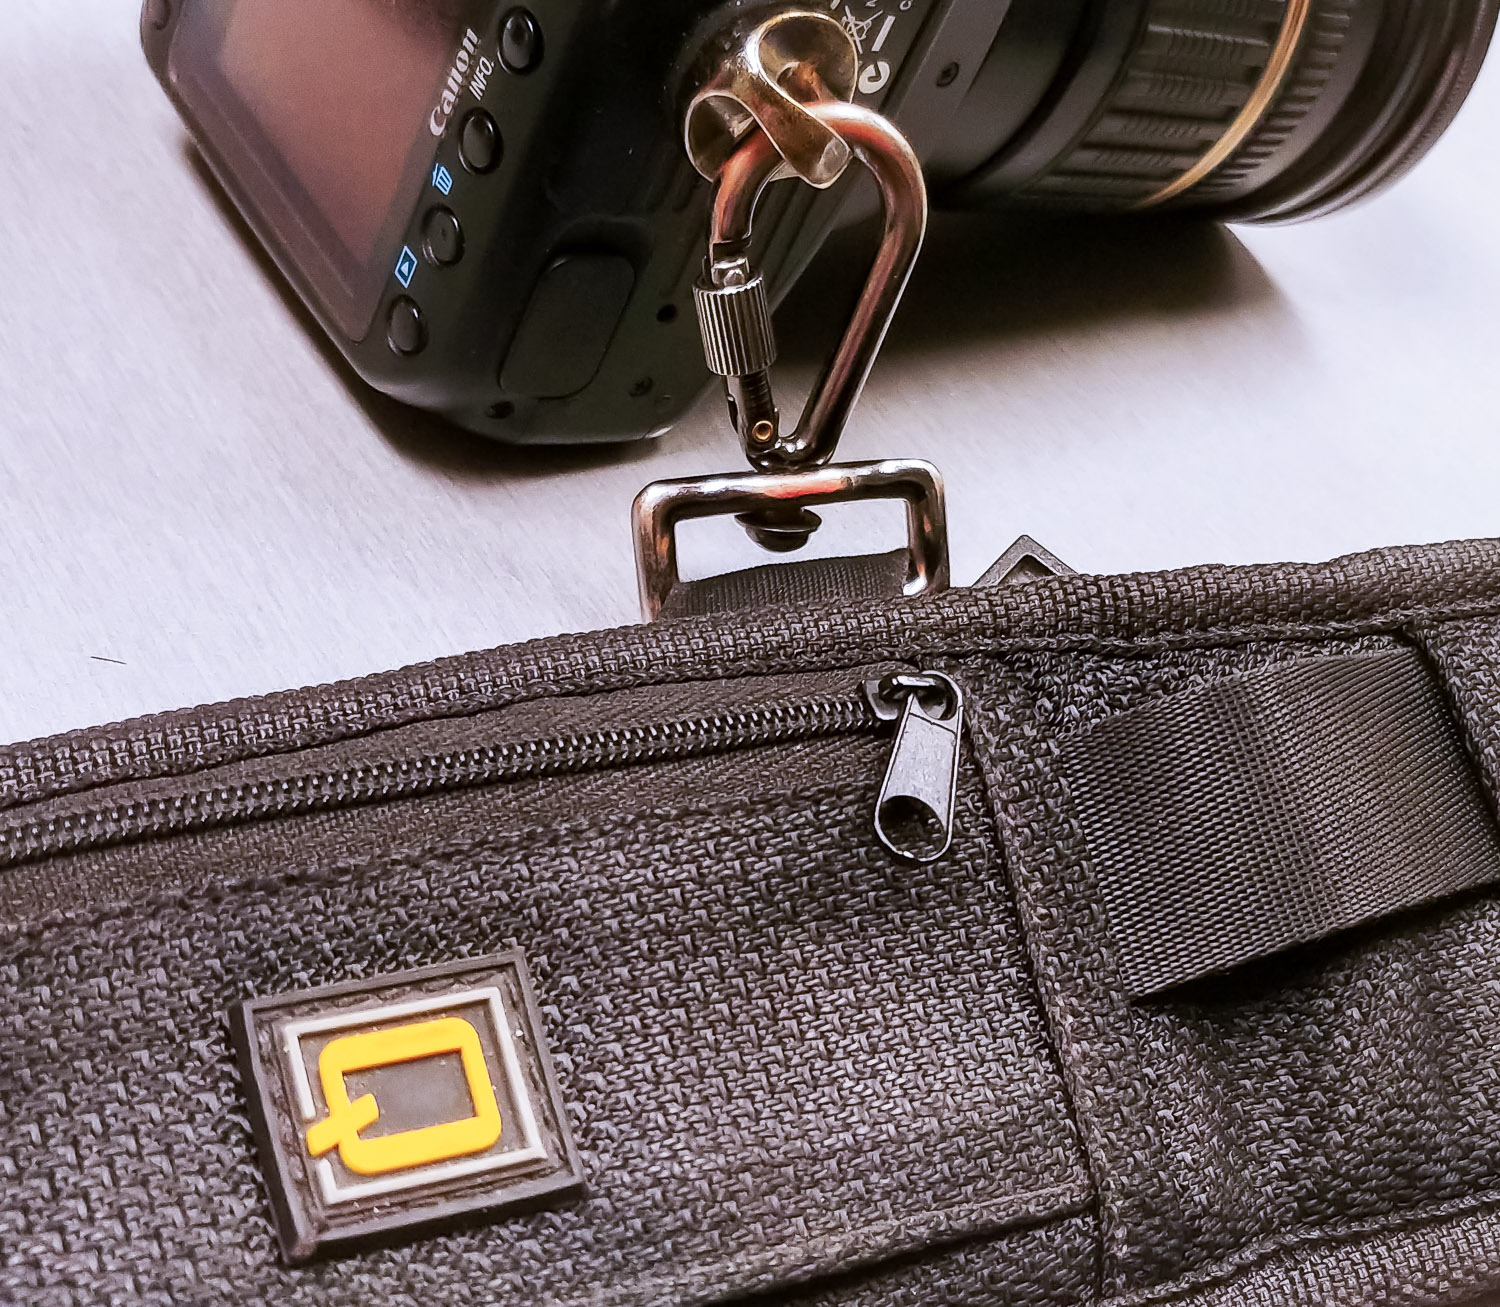 Image: A sling-style camera strap attached to the bottom tripod hole of a camera with a locking cara...